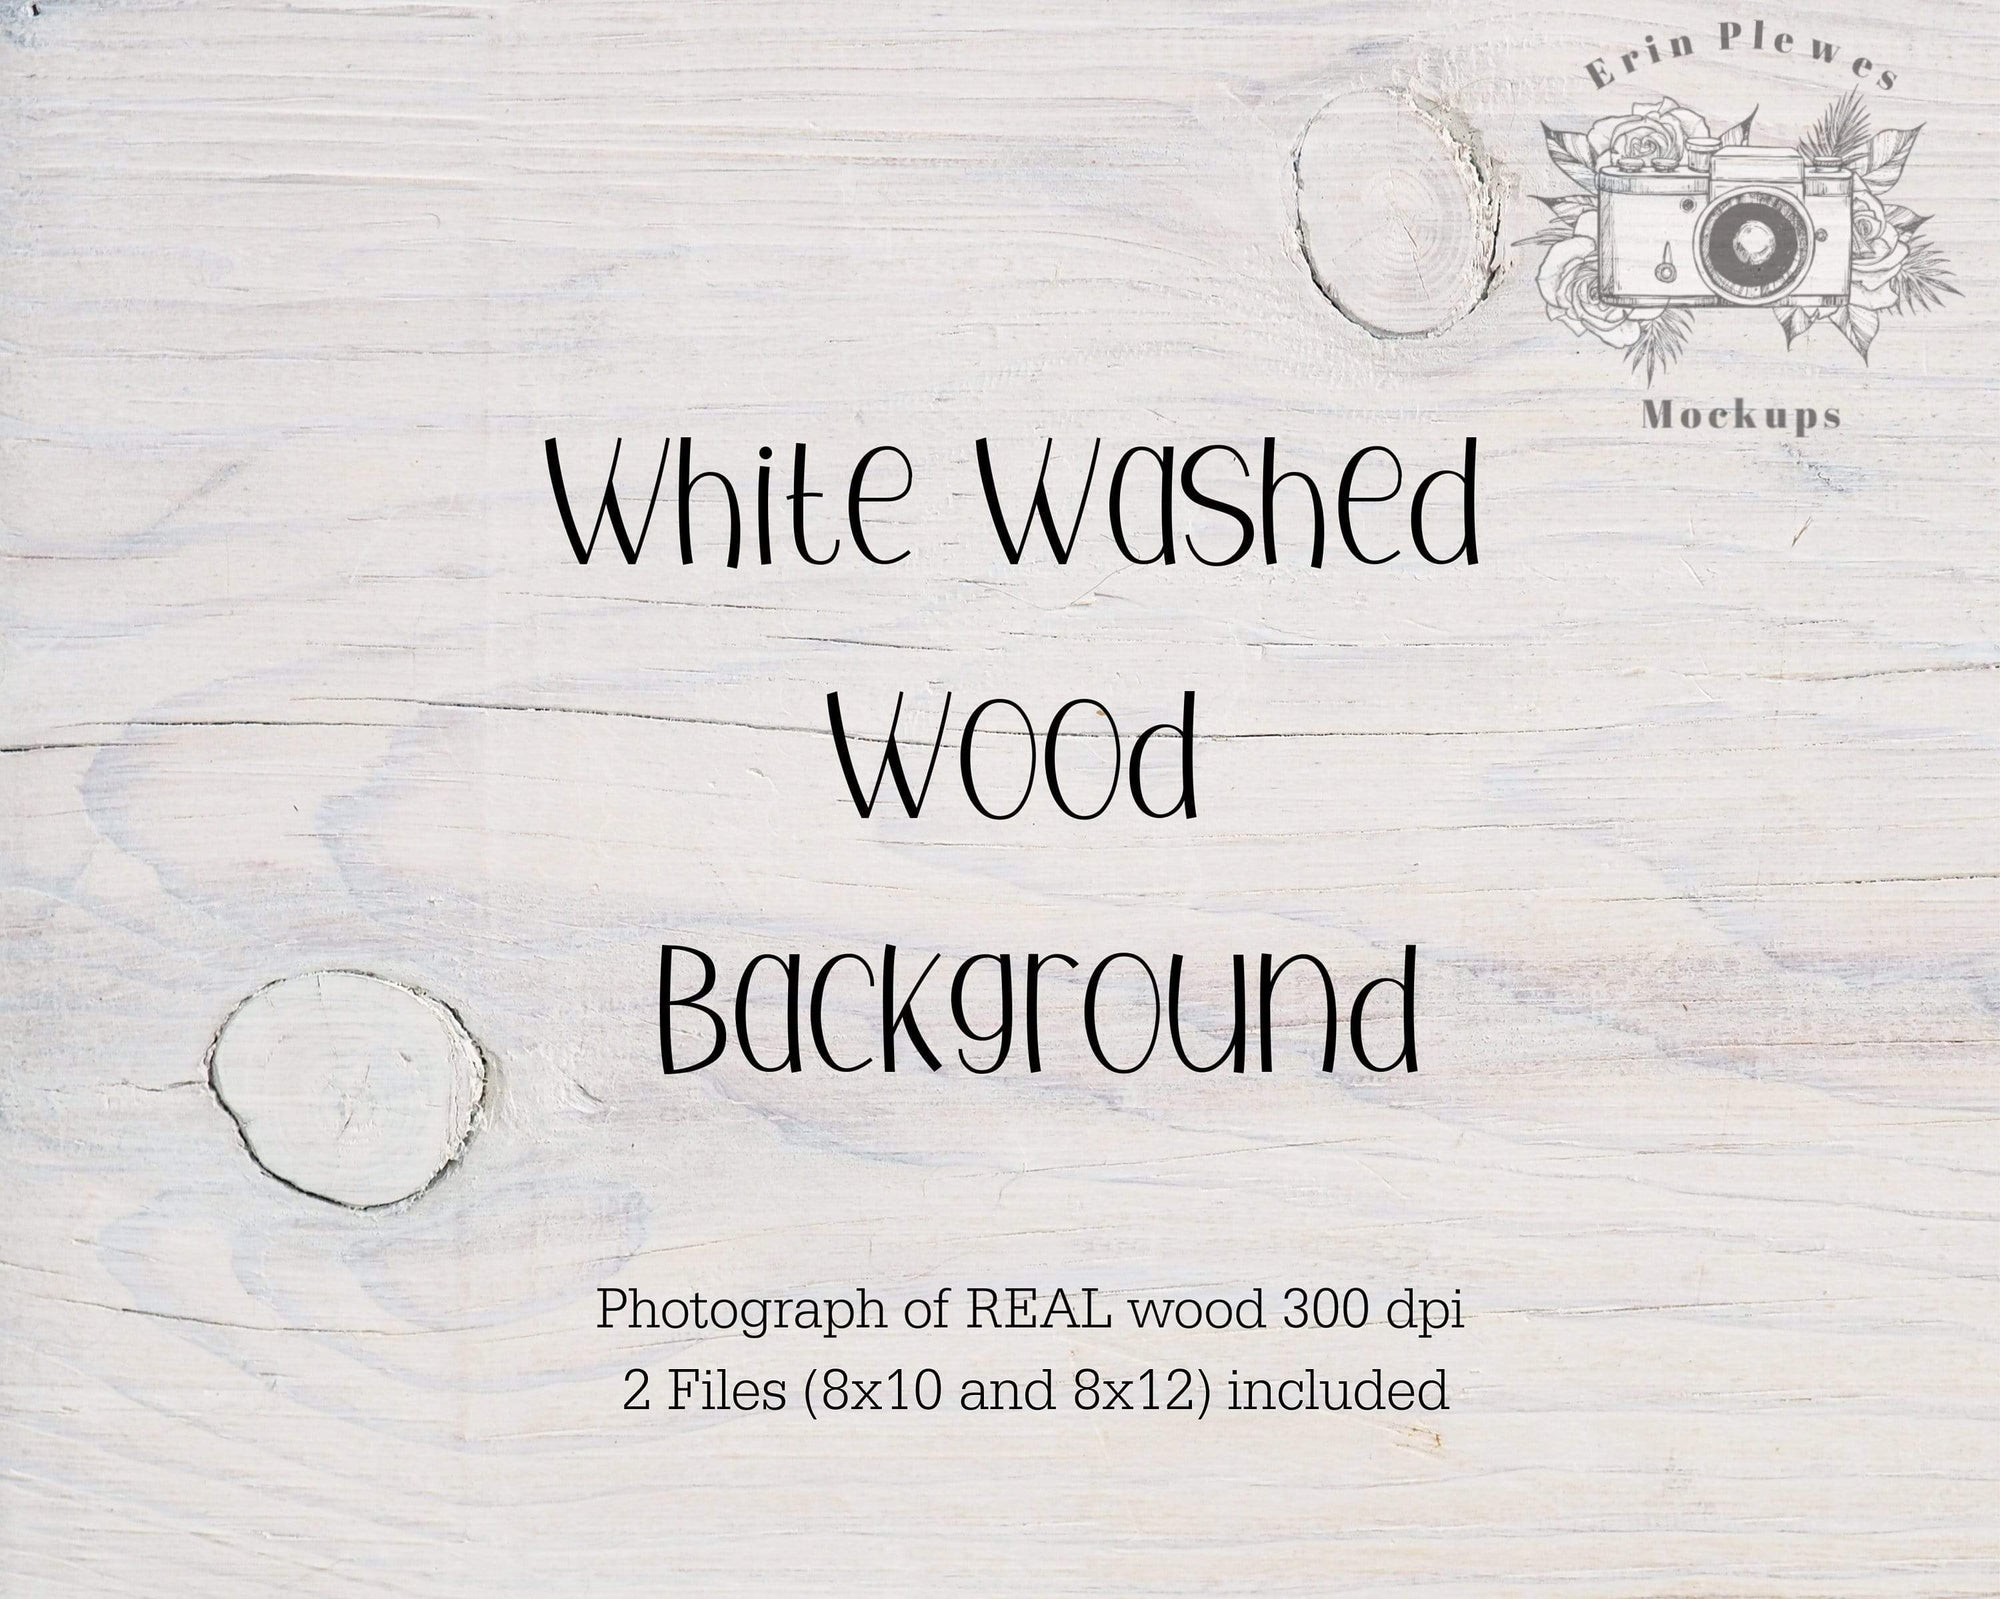 Erin Plewes Mockups Gray Wood Digital Background, Rustic White Washed Wood Digital Paper, Wood Background Mockup, Instant Digital Download Jpg